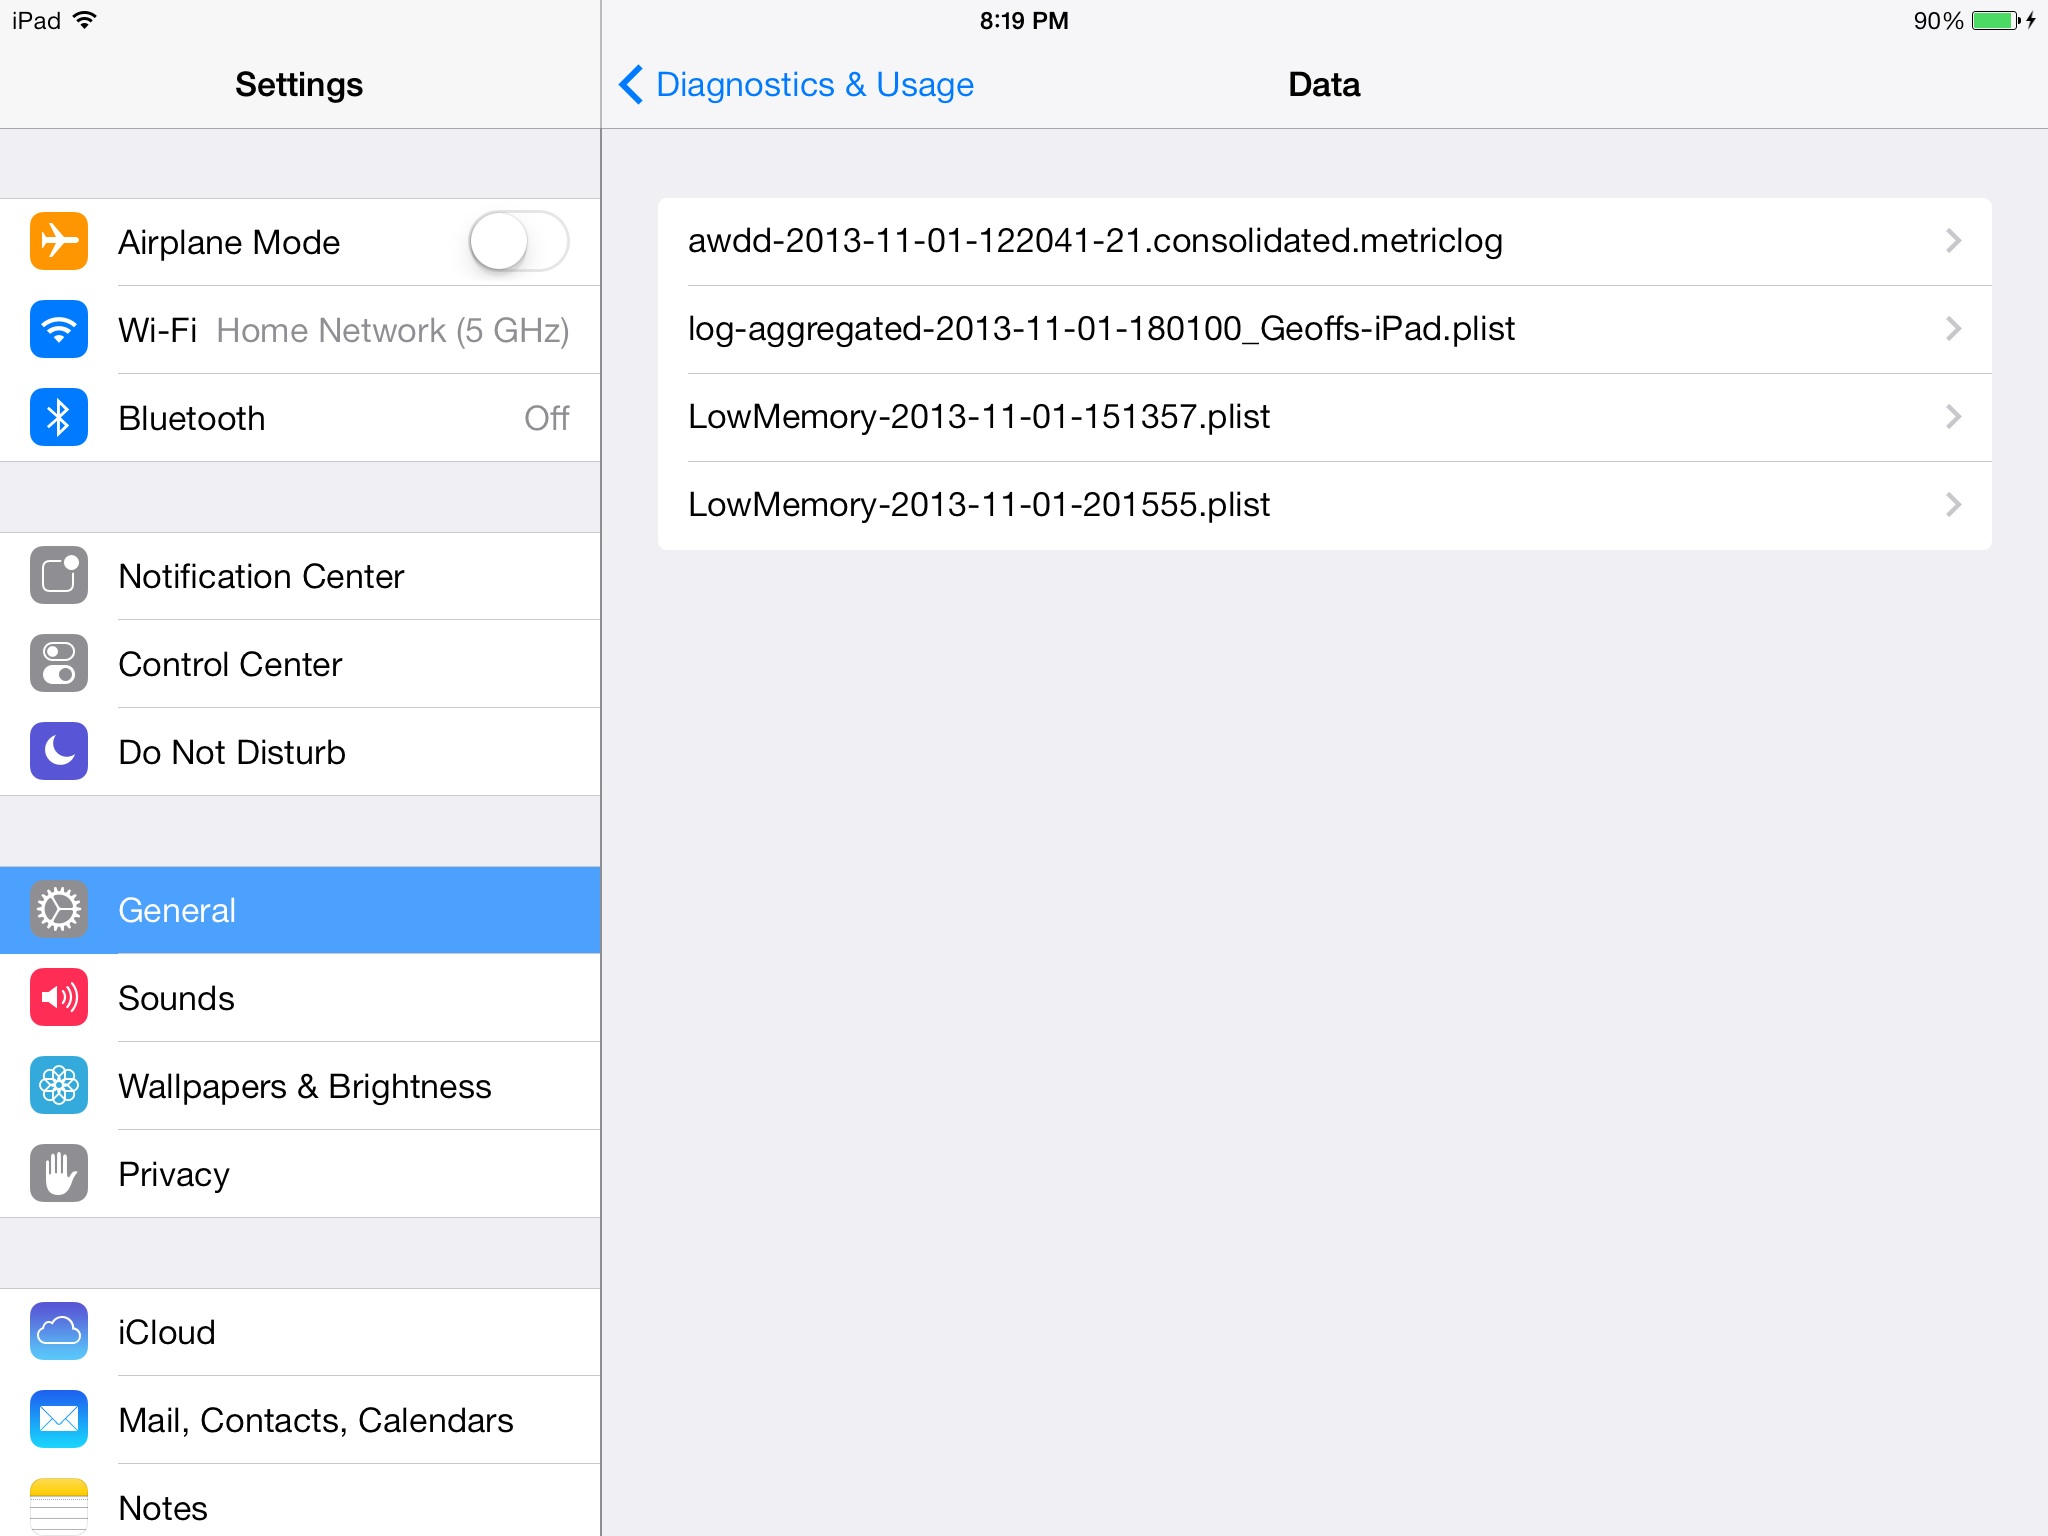 iPad - Apps Crashing on iPad Air | MacRumors Forums